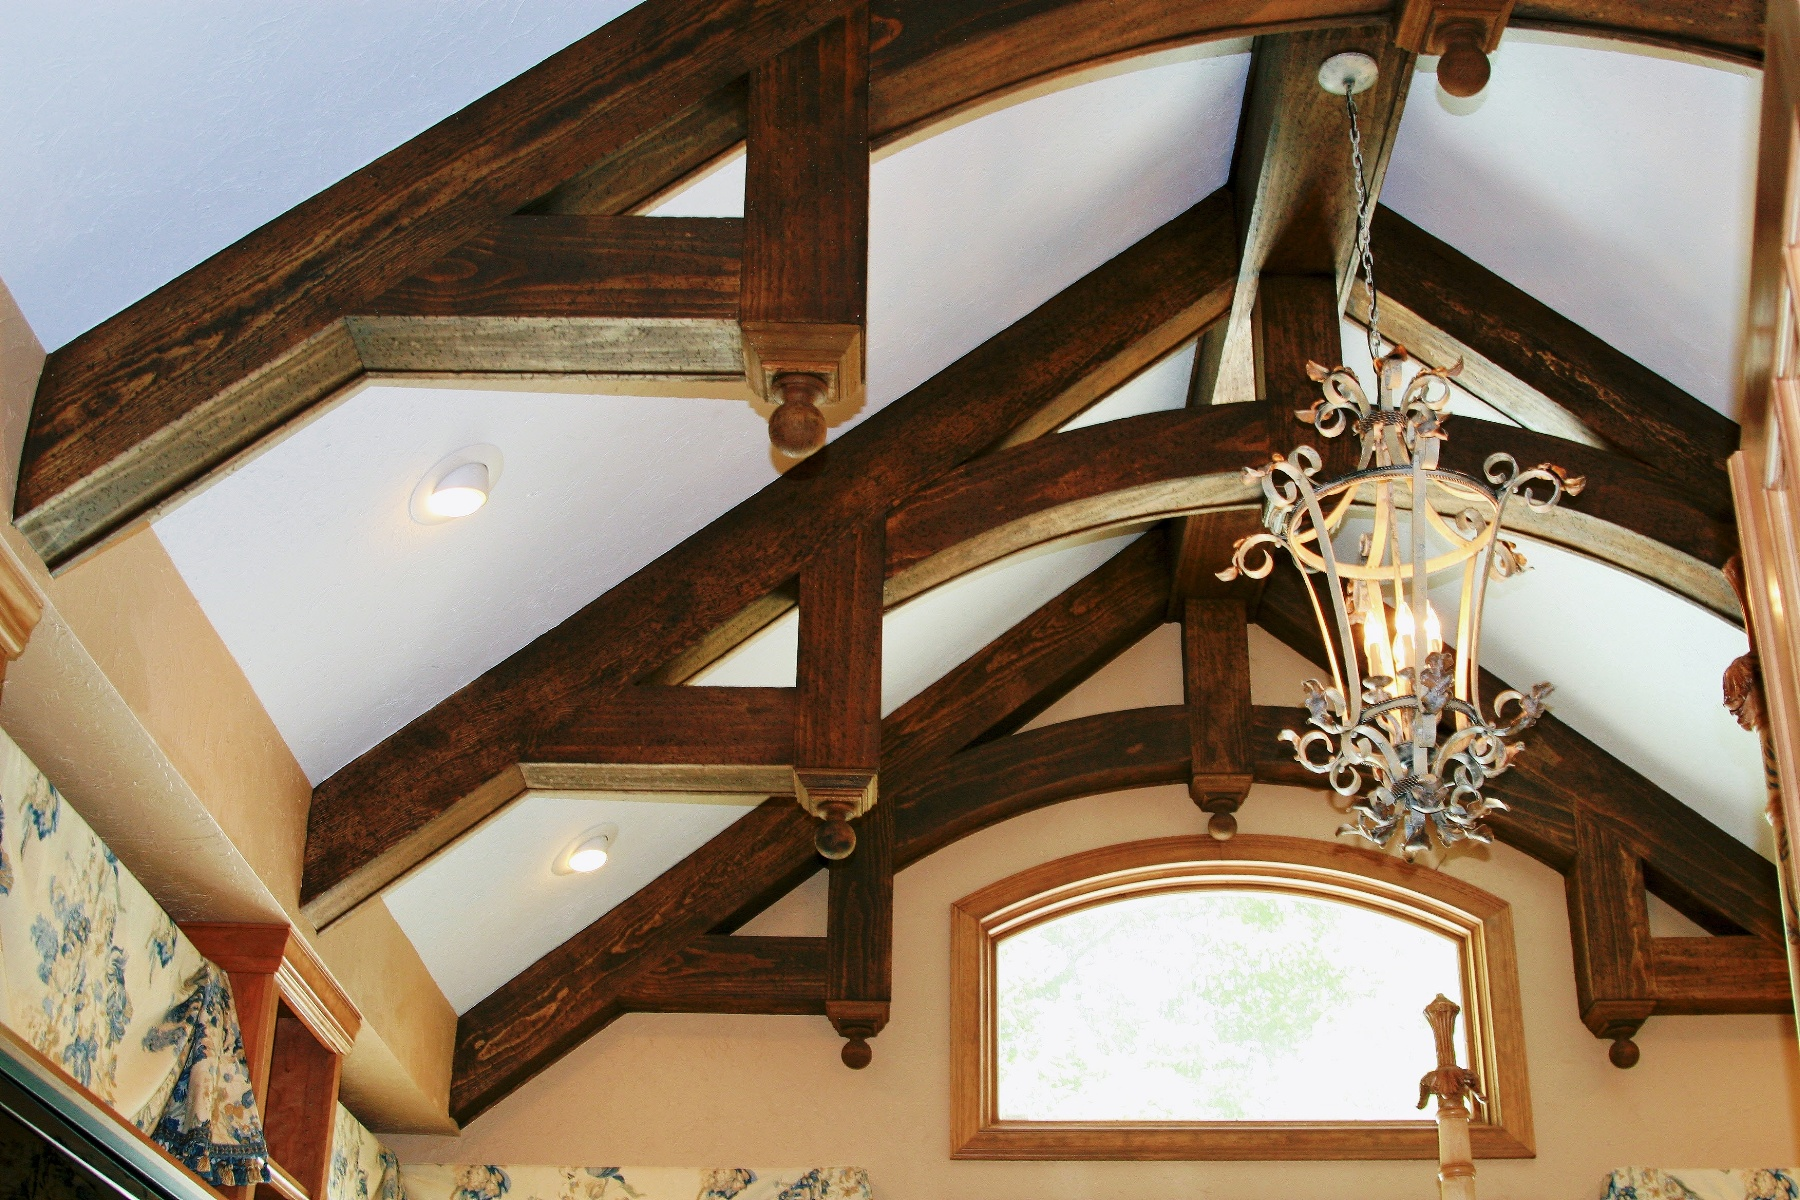 Room addition with custom rafters